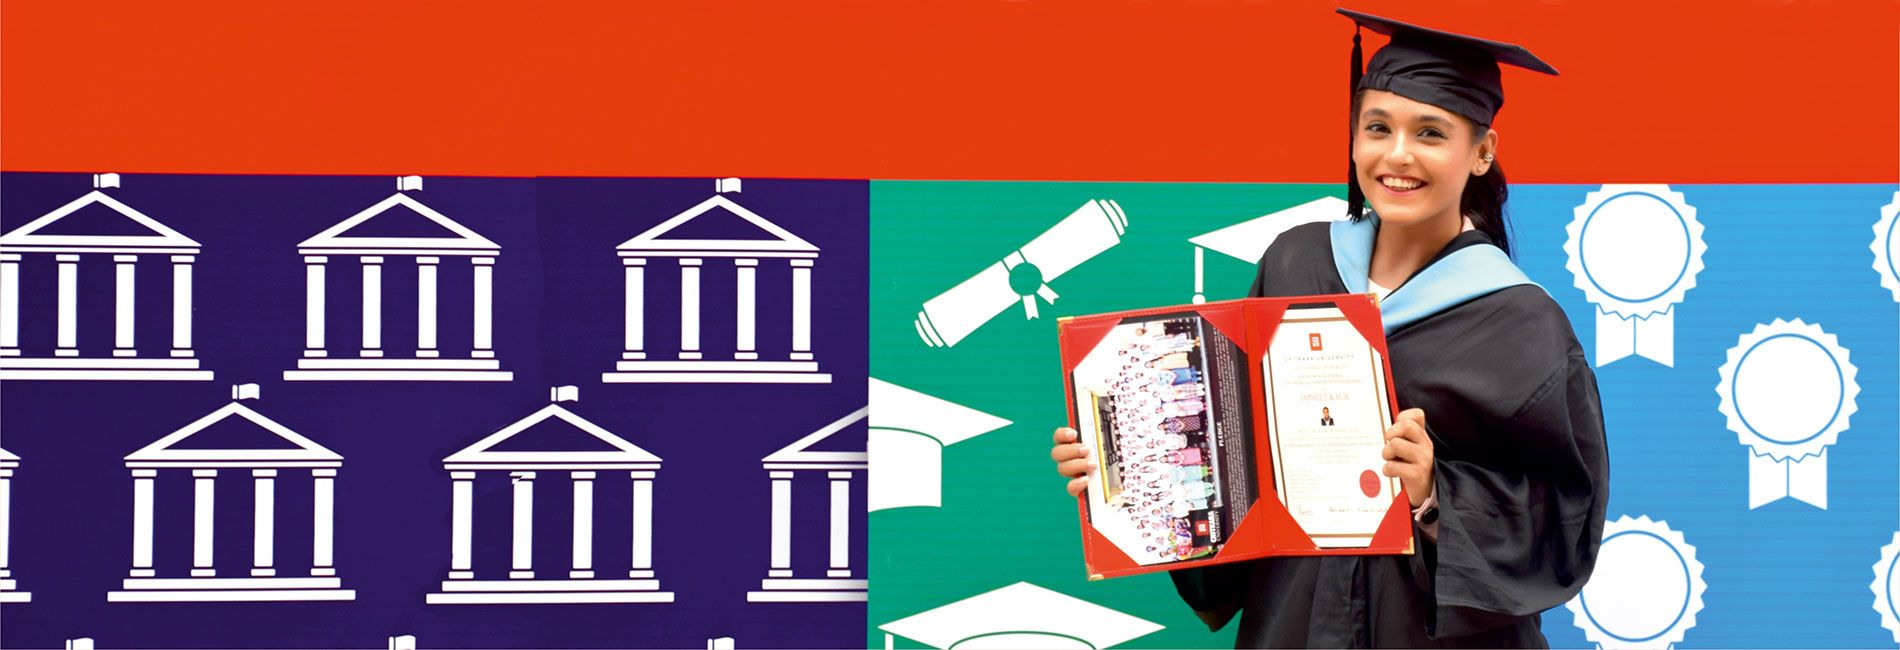 Best Business School in North India, Punjab and Chandigarh